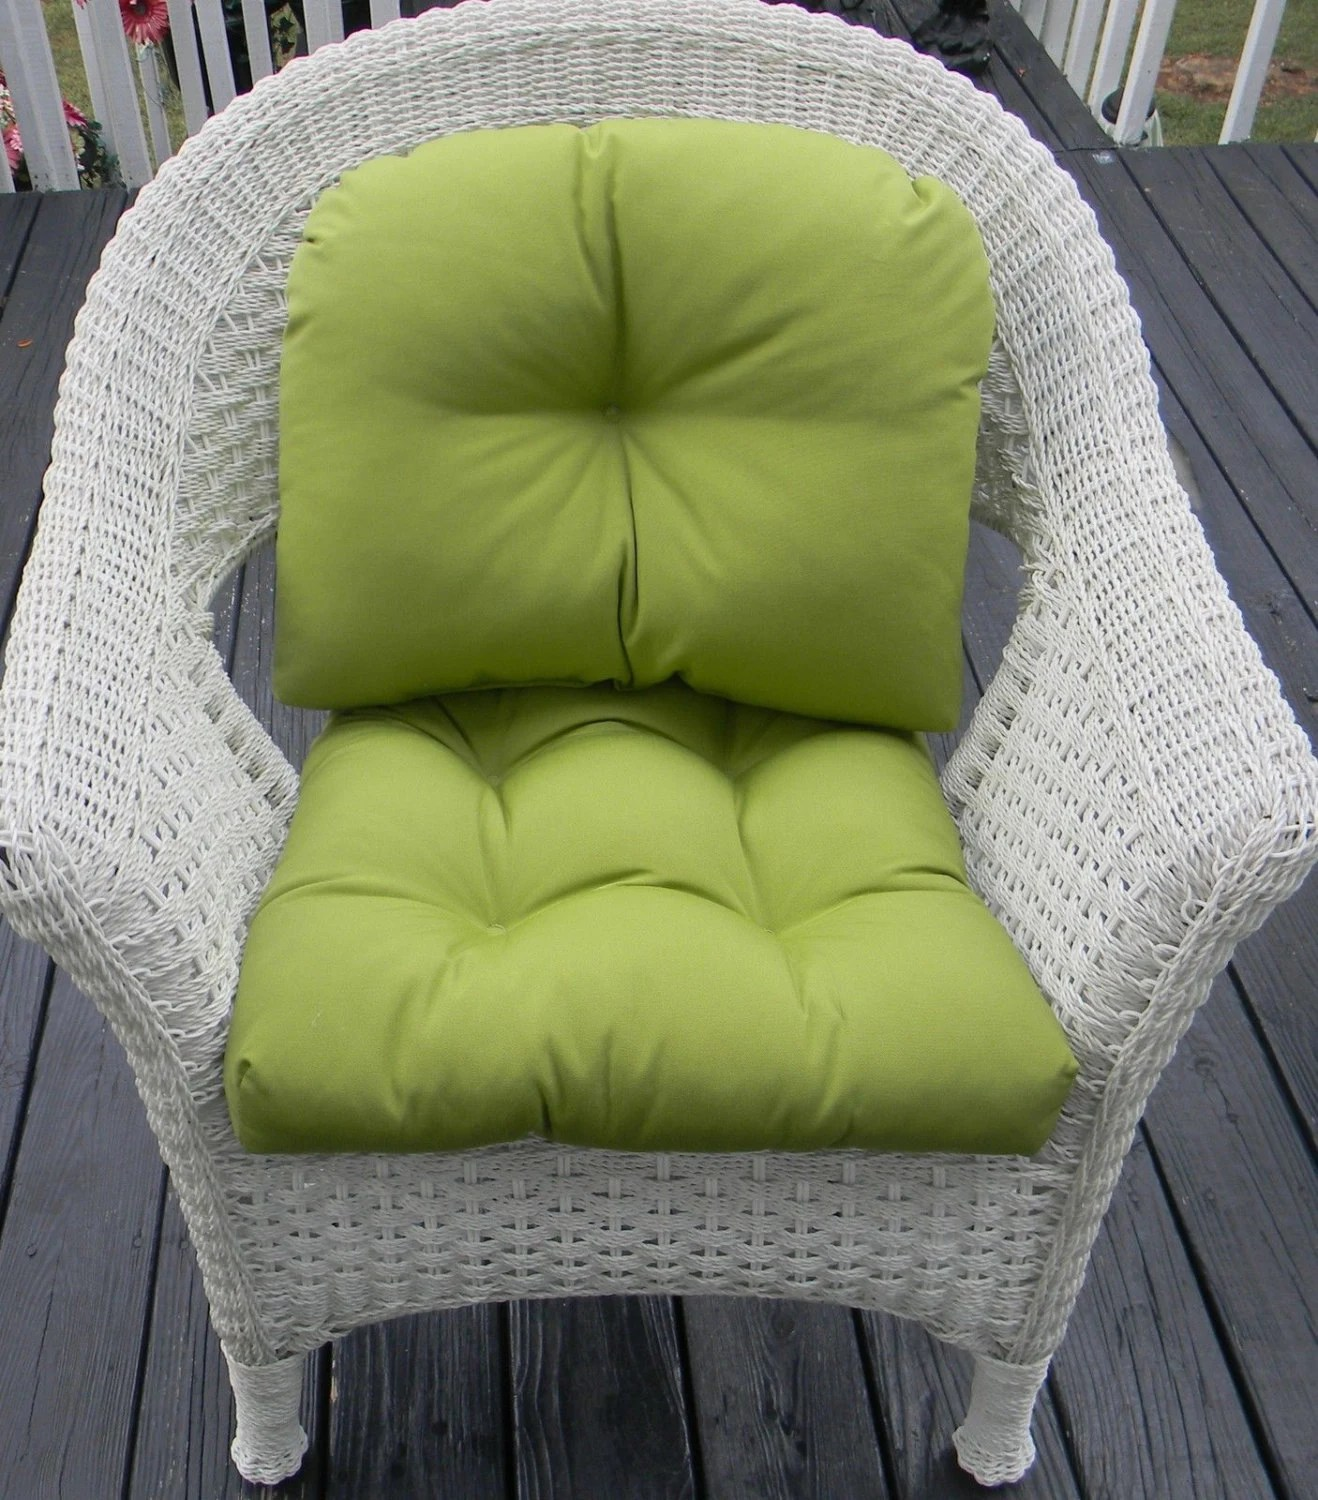 indoor outdoor chair cushions fabric covers for dining room chairs uk wicker cushion and back pillow